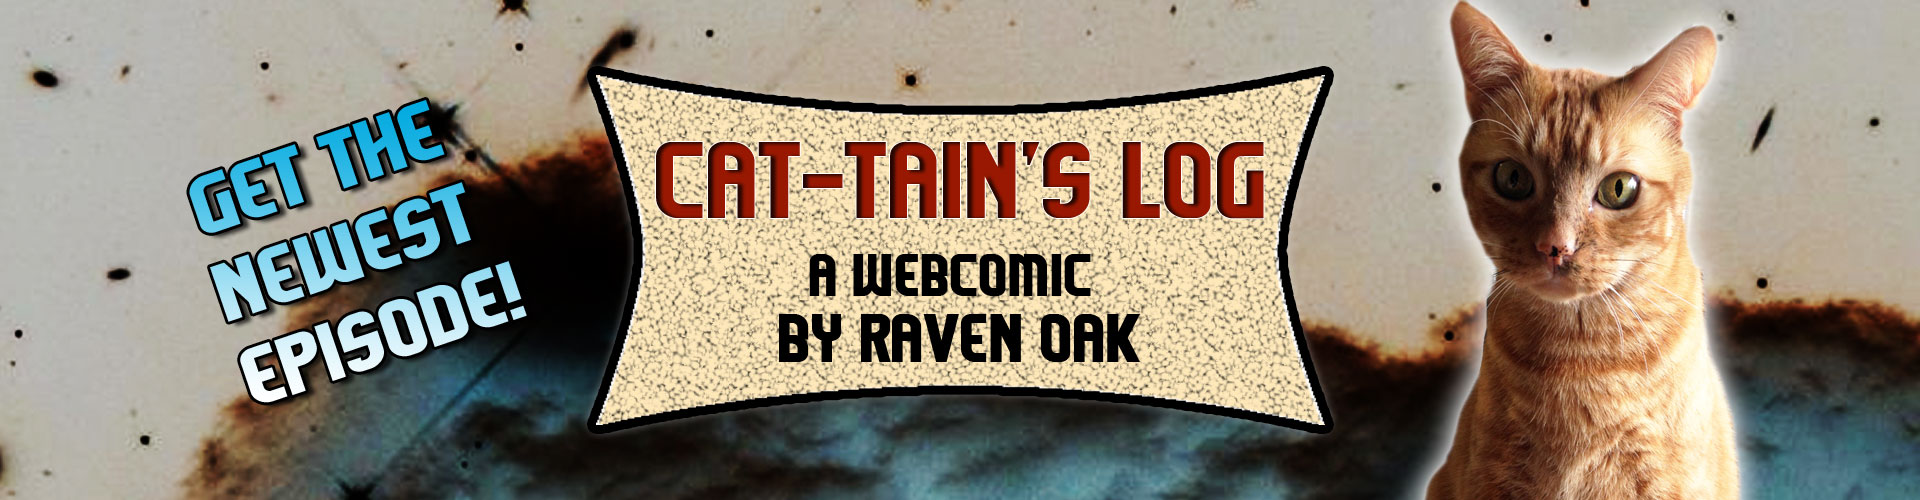 Cat-tain's Log: A Webcomic